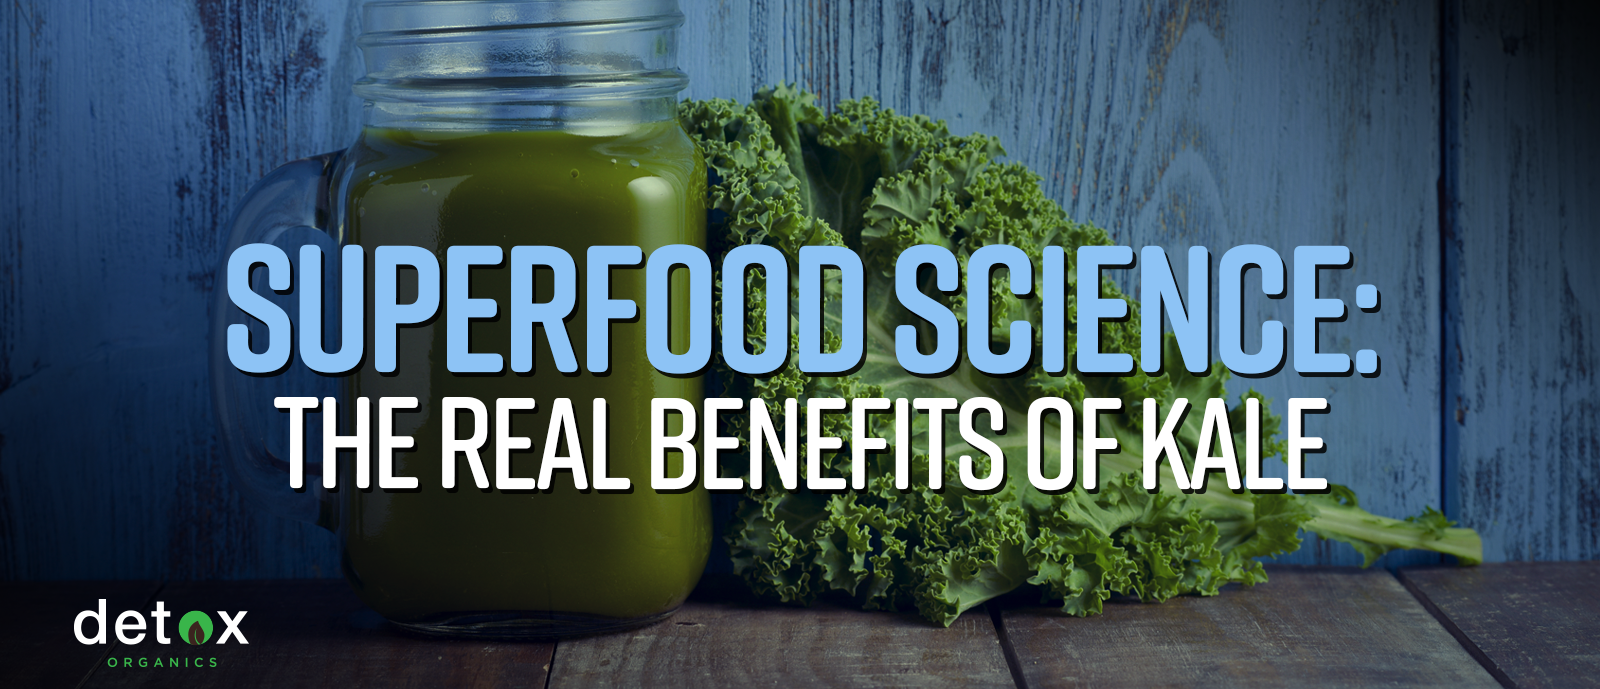 Superfood Science: The Real Benefits of Kale (How to Cook and Consume)